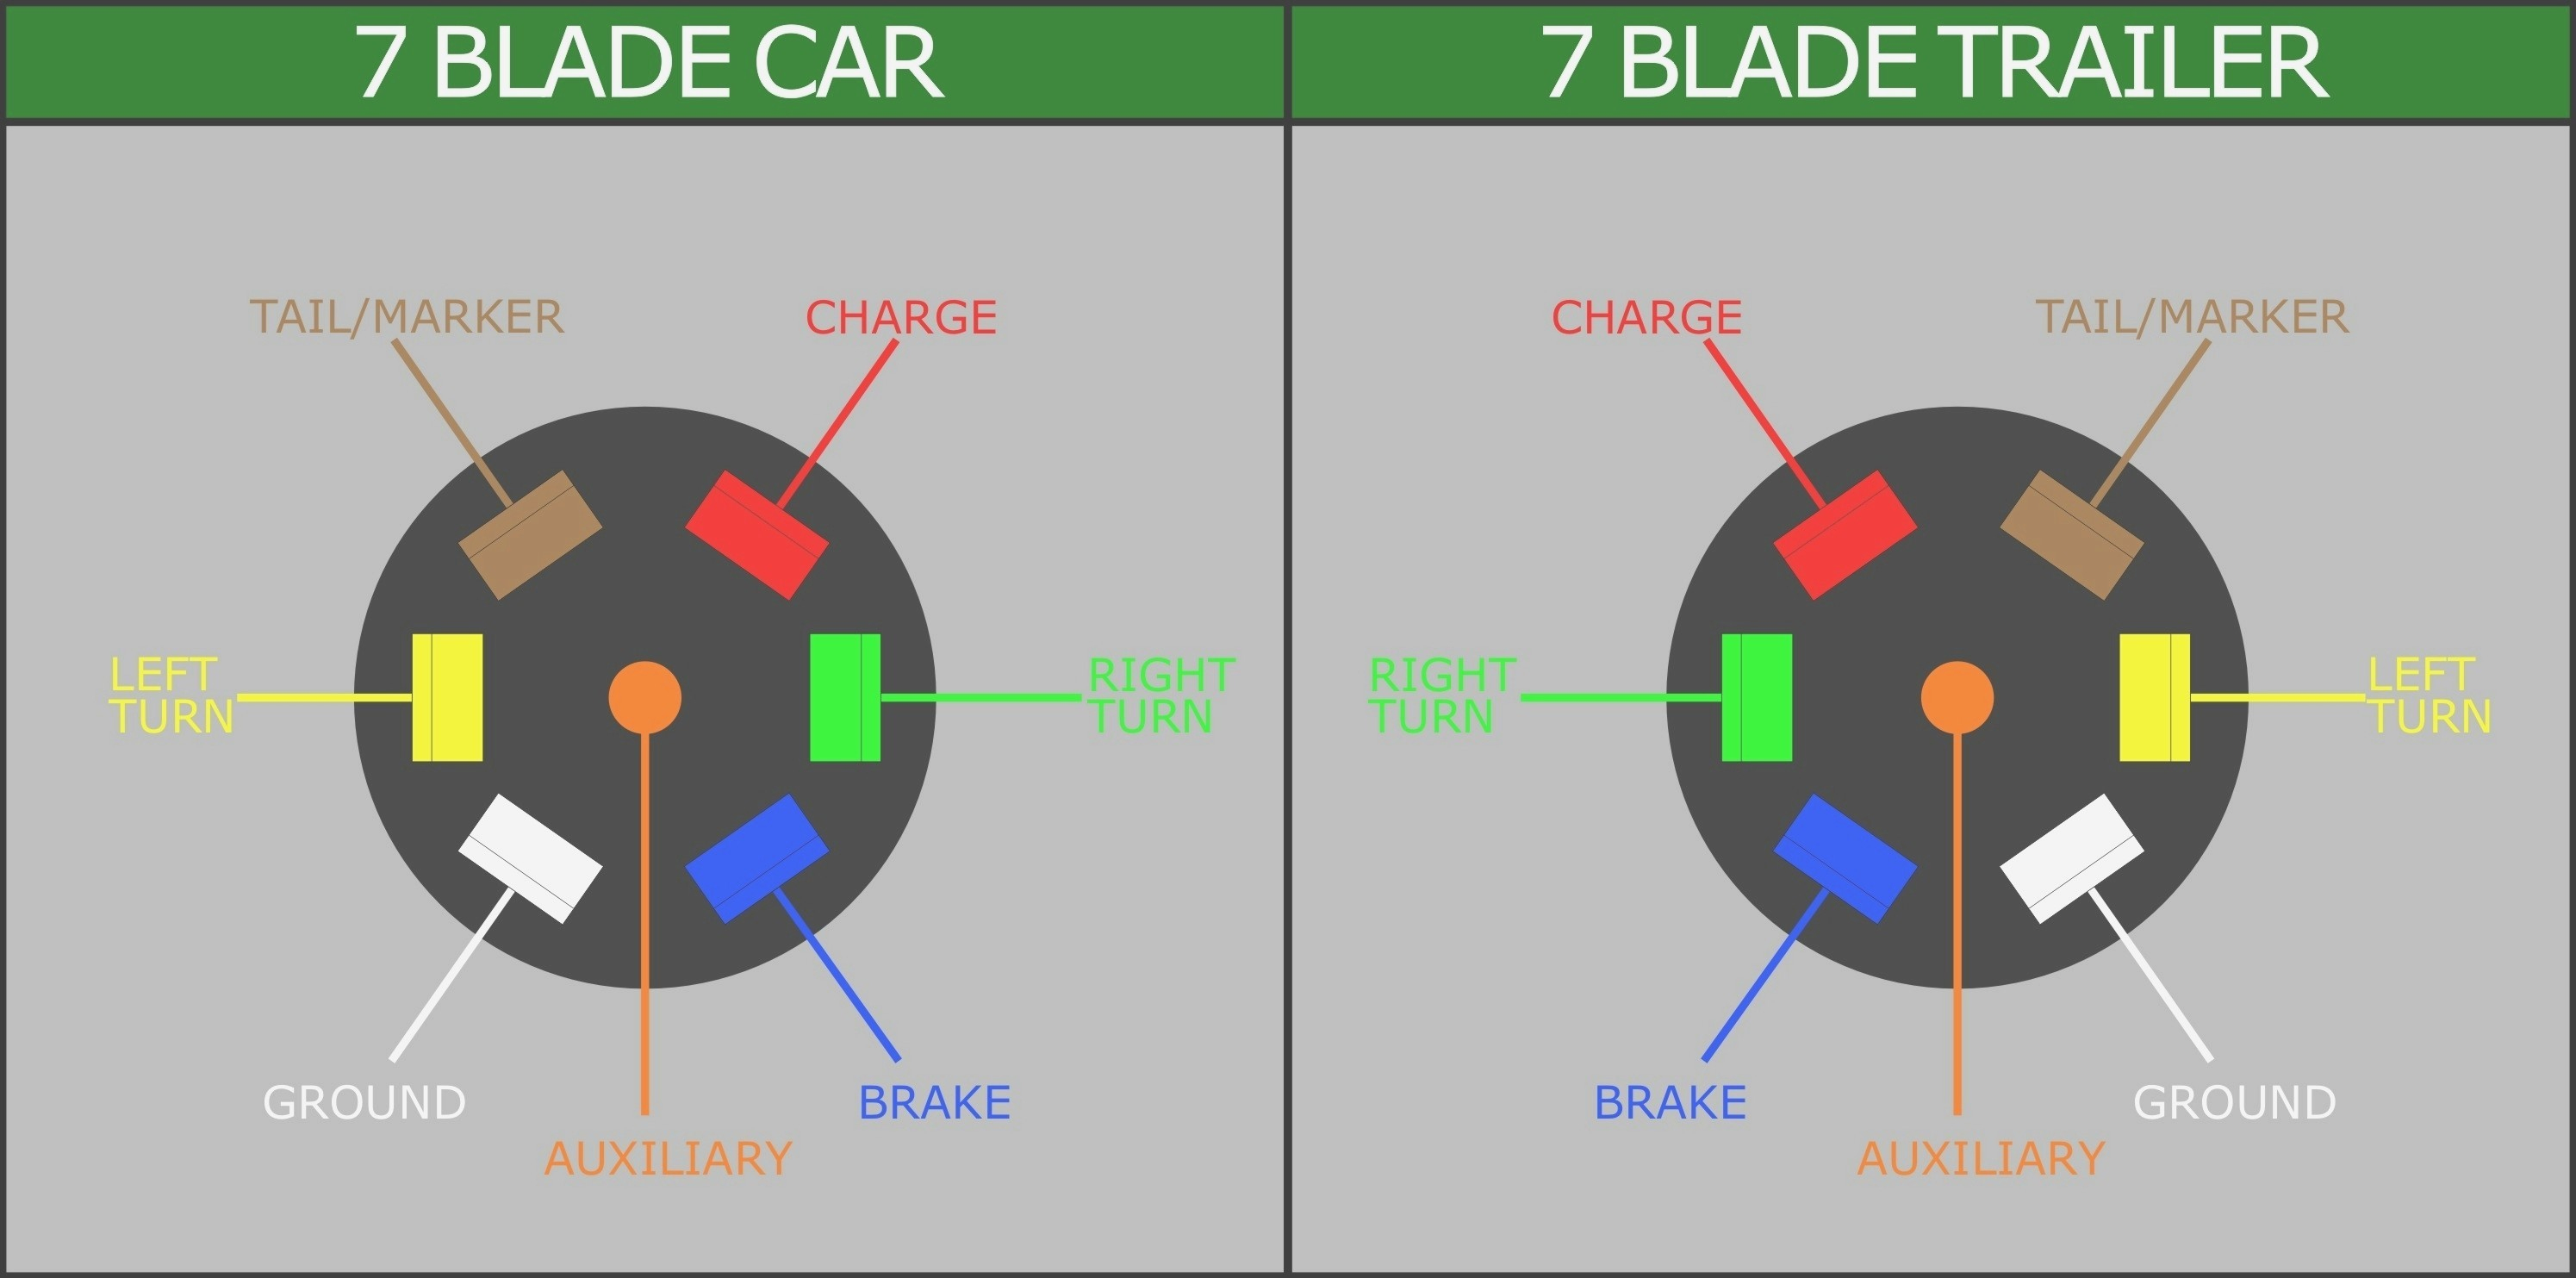 Trailer 7 Blade Wiring Diagram